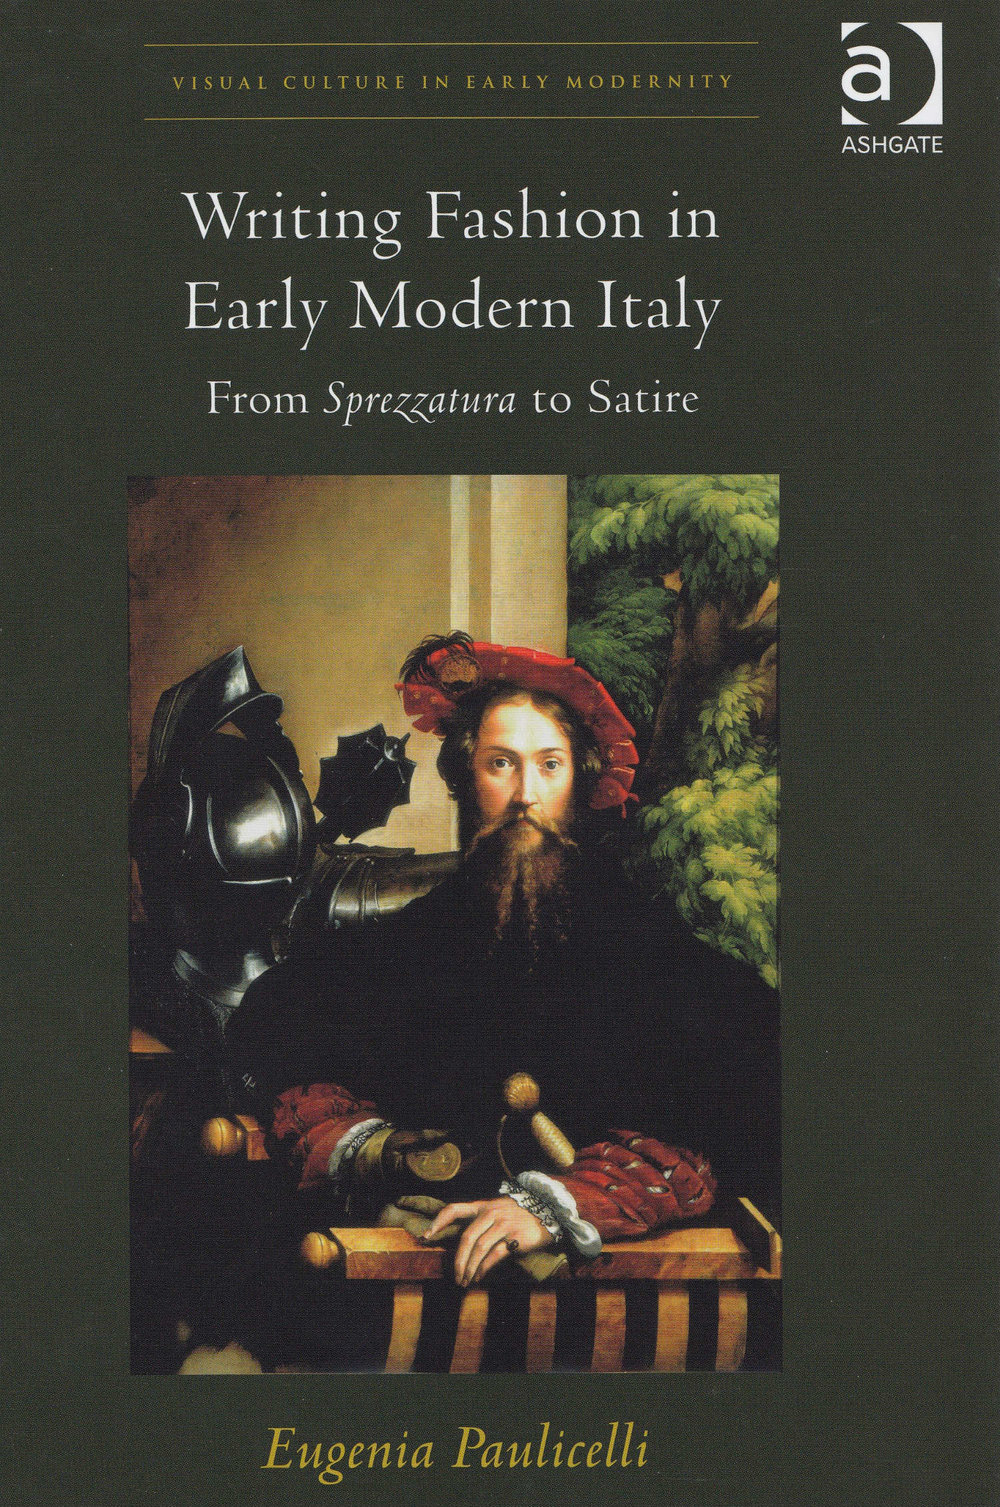 WritingFashionEarlyModernItaly.jpg